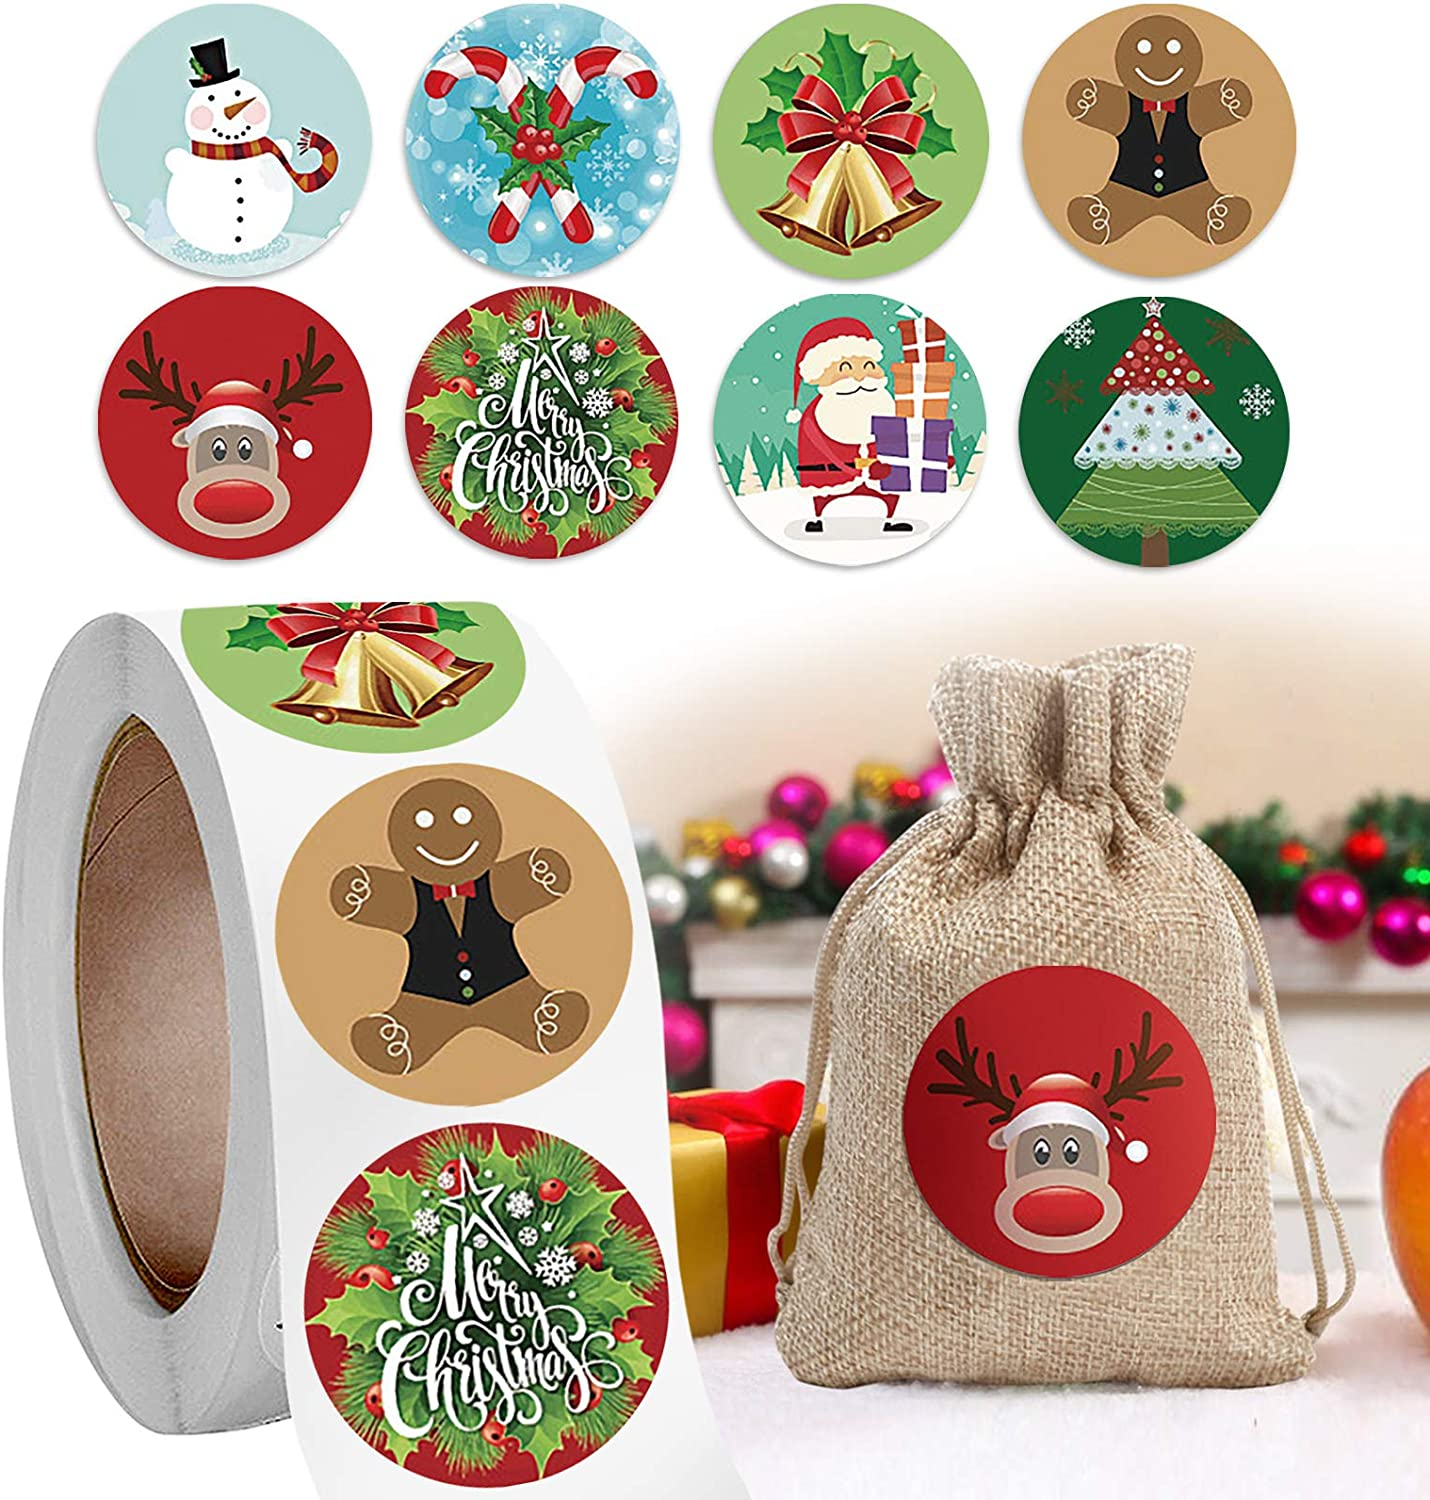 Gxhong Merry Christmas Stickers Labels Roll Christmas Holiday Round Adhesive Labels Sticker for Cards Present Craft Candy Envelopes Boxes Bag Sealing Xmas Party Decorations Supplies